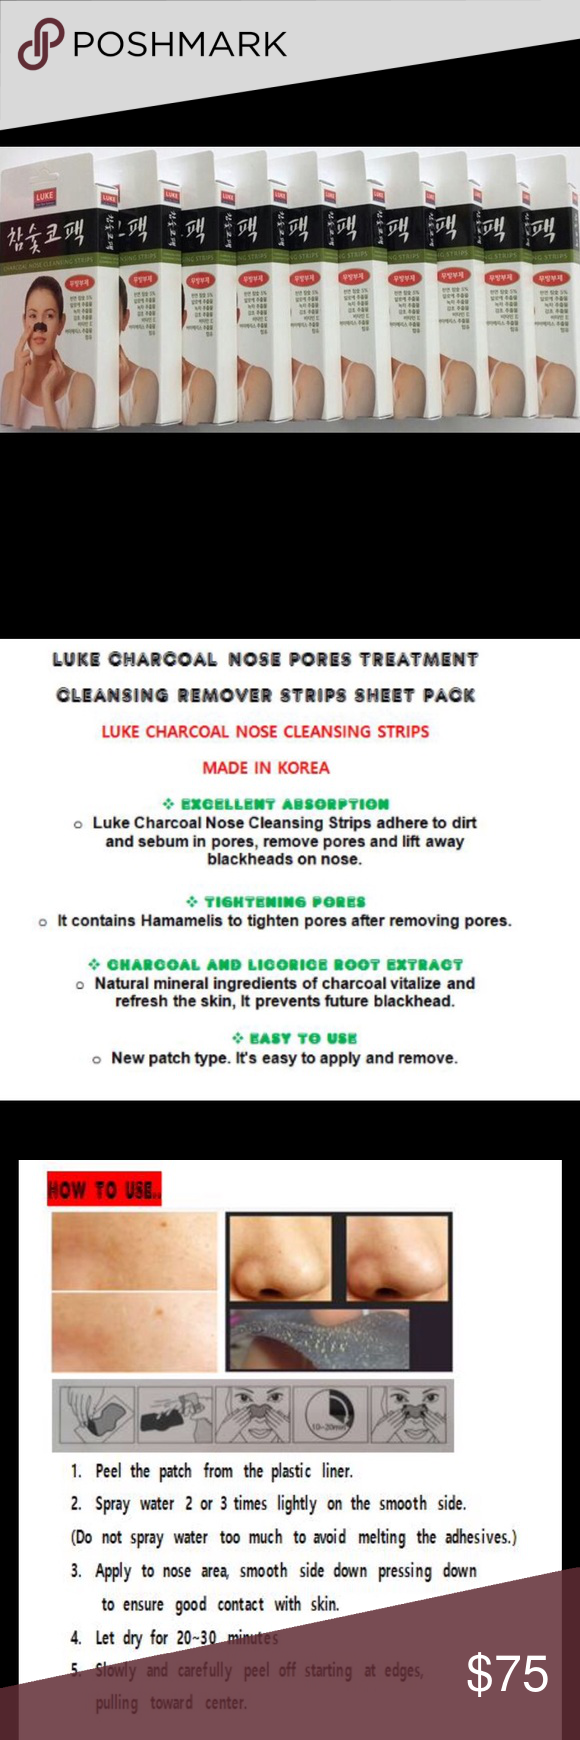 CHARCOAL NOSE CLEANSING 100 STRIPS (10 Box) Brand New!! / Expiration Date - 09/02/2018  Type - Cleansing Mask - All Skin type / Gender - Unisex   LUKE CHARCOAL NOSE PORES TREATMENT  CLEANSING REMOVER STRIPS SHEET PACK  LUKE CHARCOAL NOSE CLEANSING 100 STRIPS (10 Box)  MADE IN KOREA. Luke Makeup